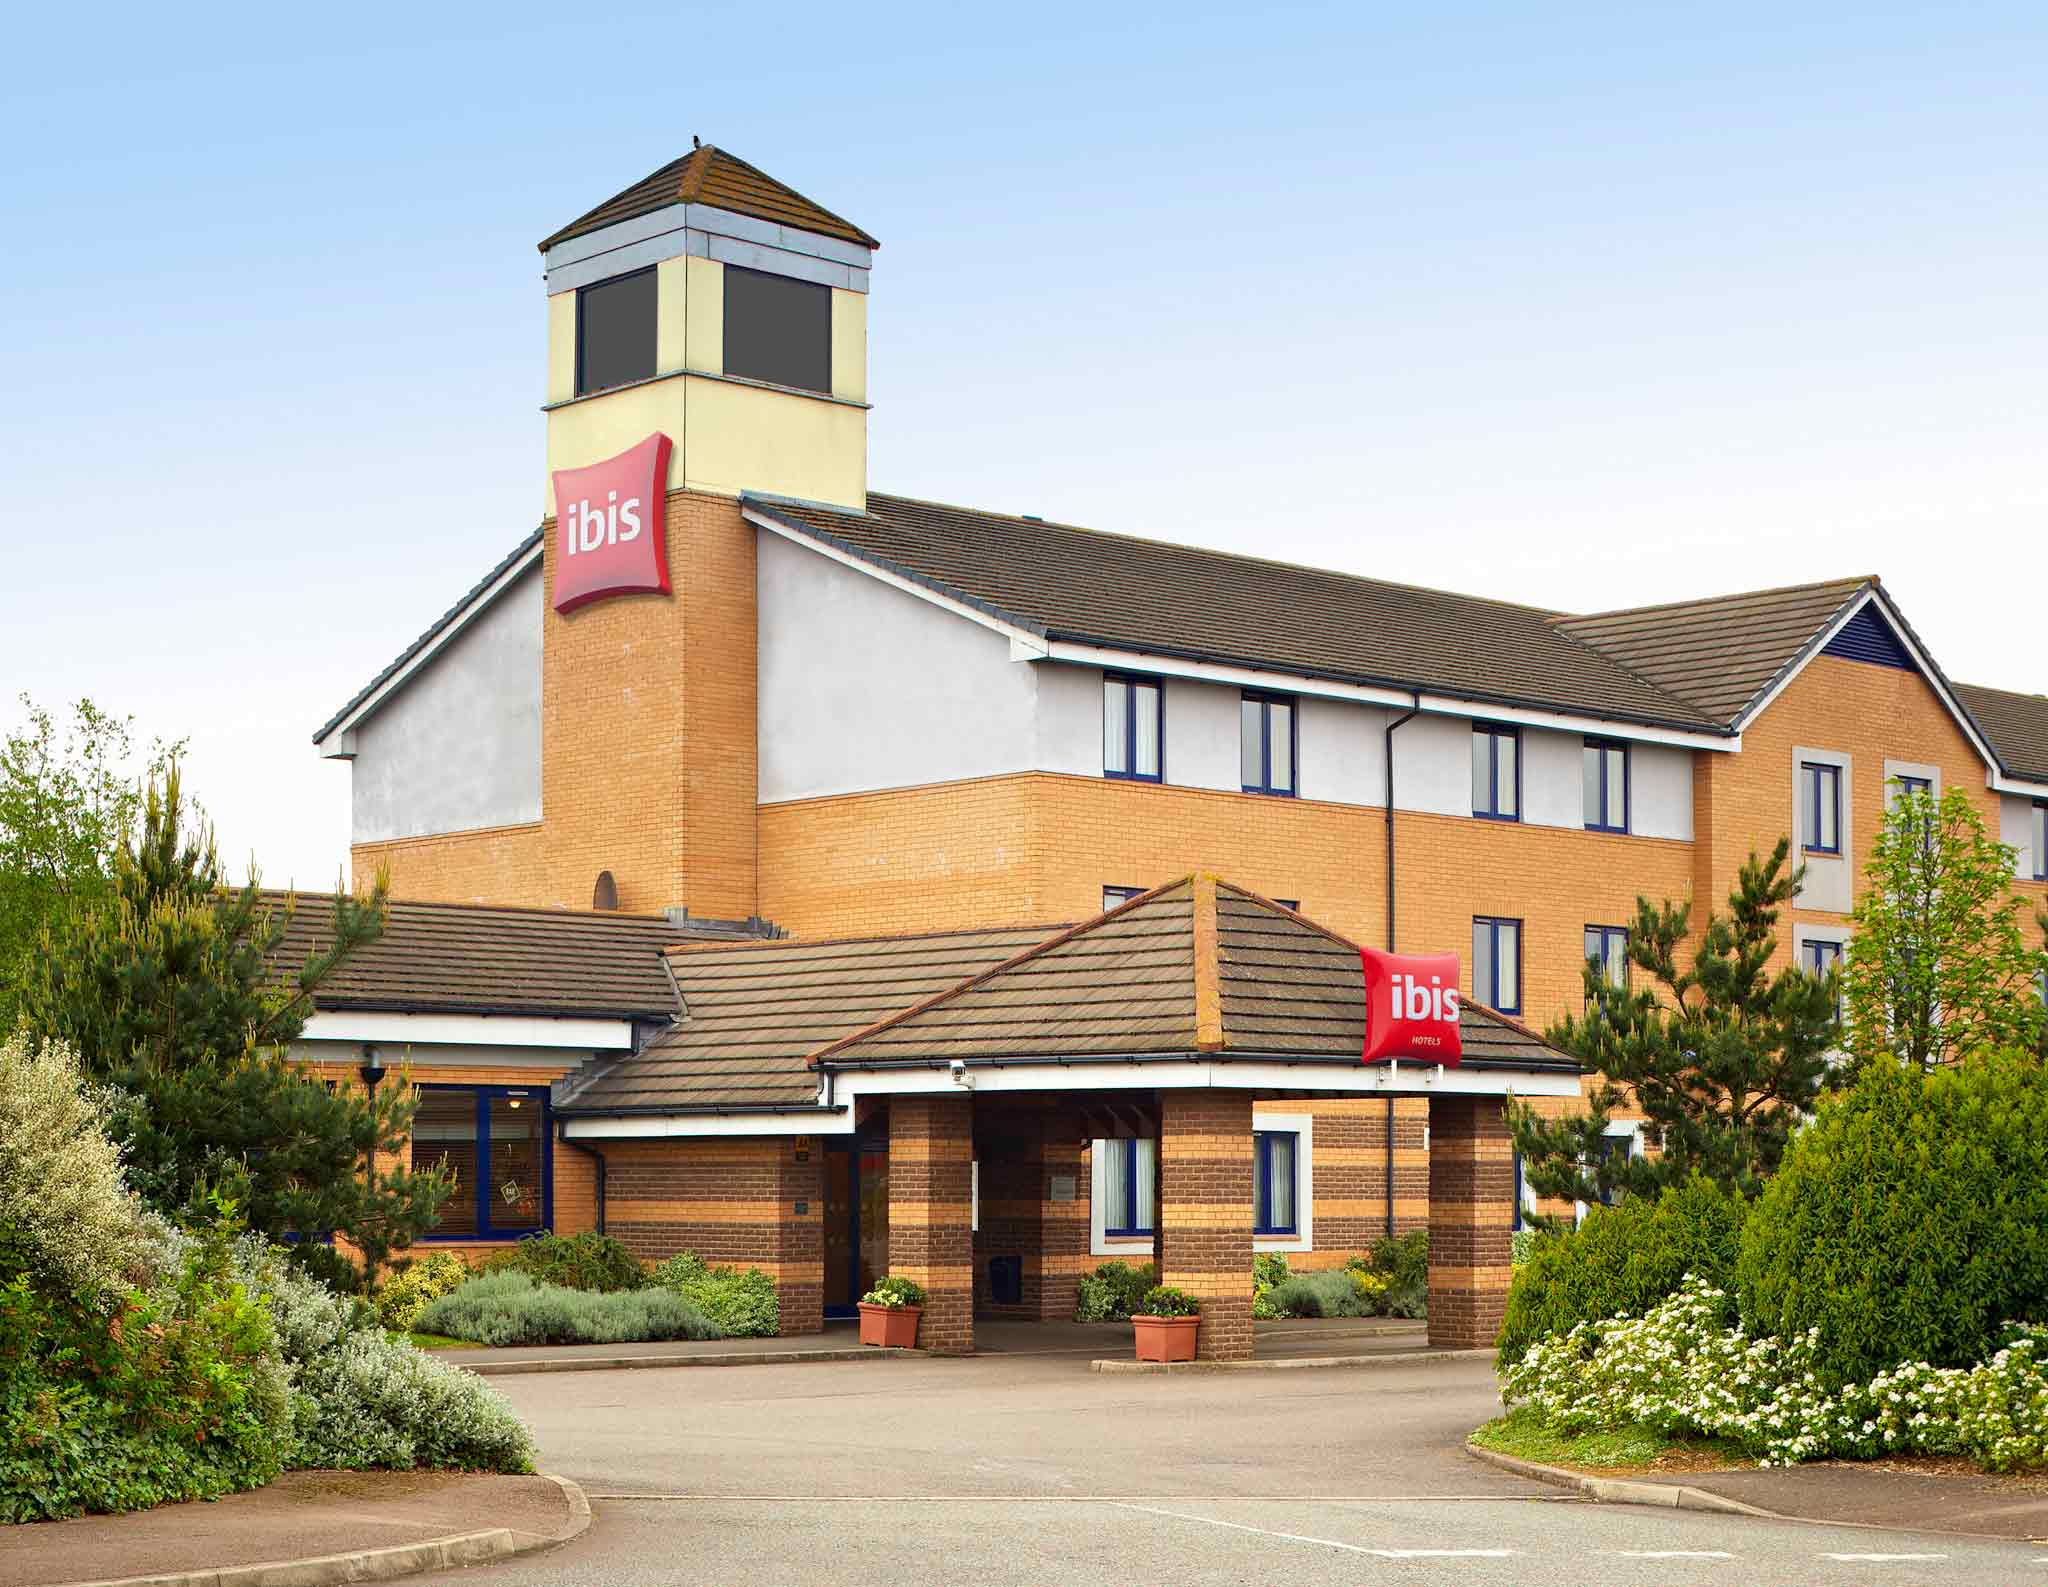 Hotel – ibis Wellingborough